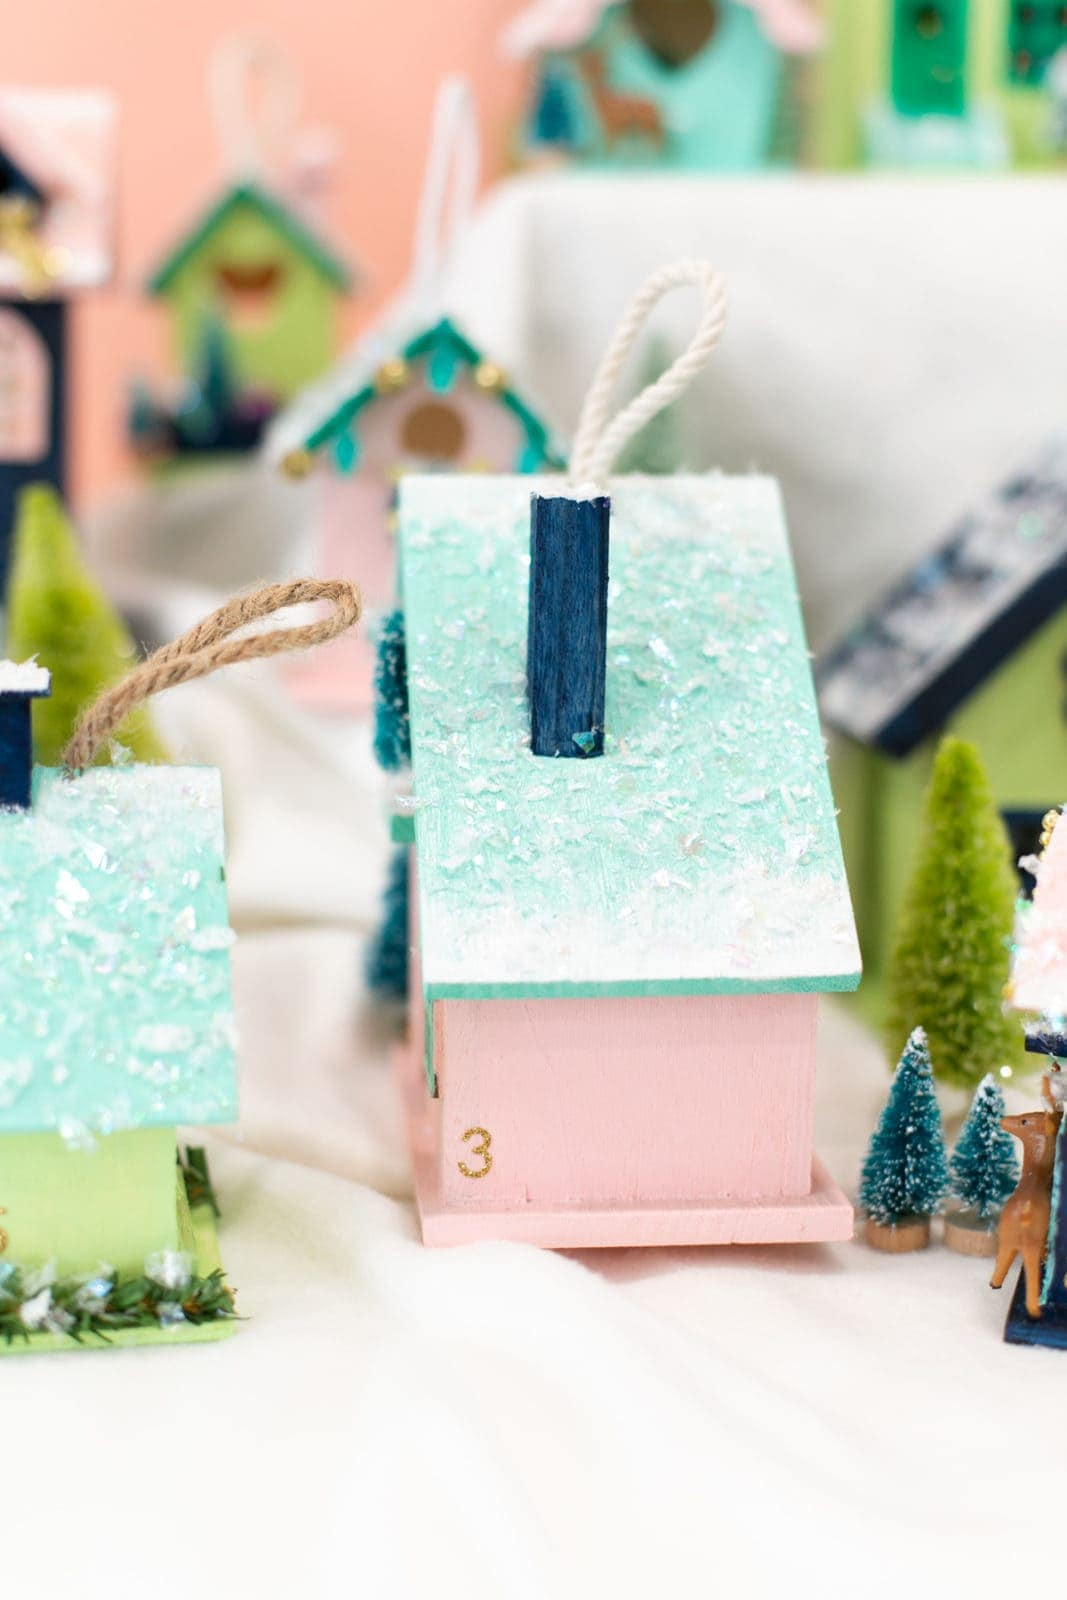 How to make a Christmas Village Advent Calendar